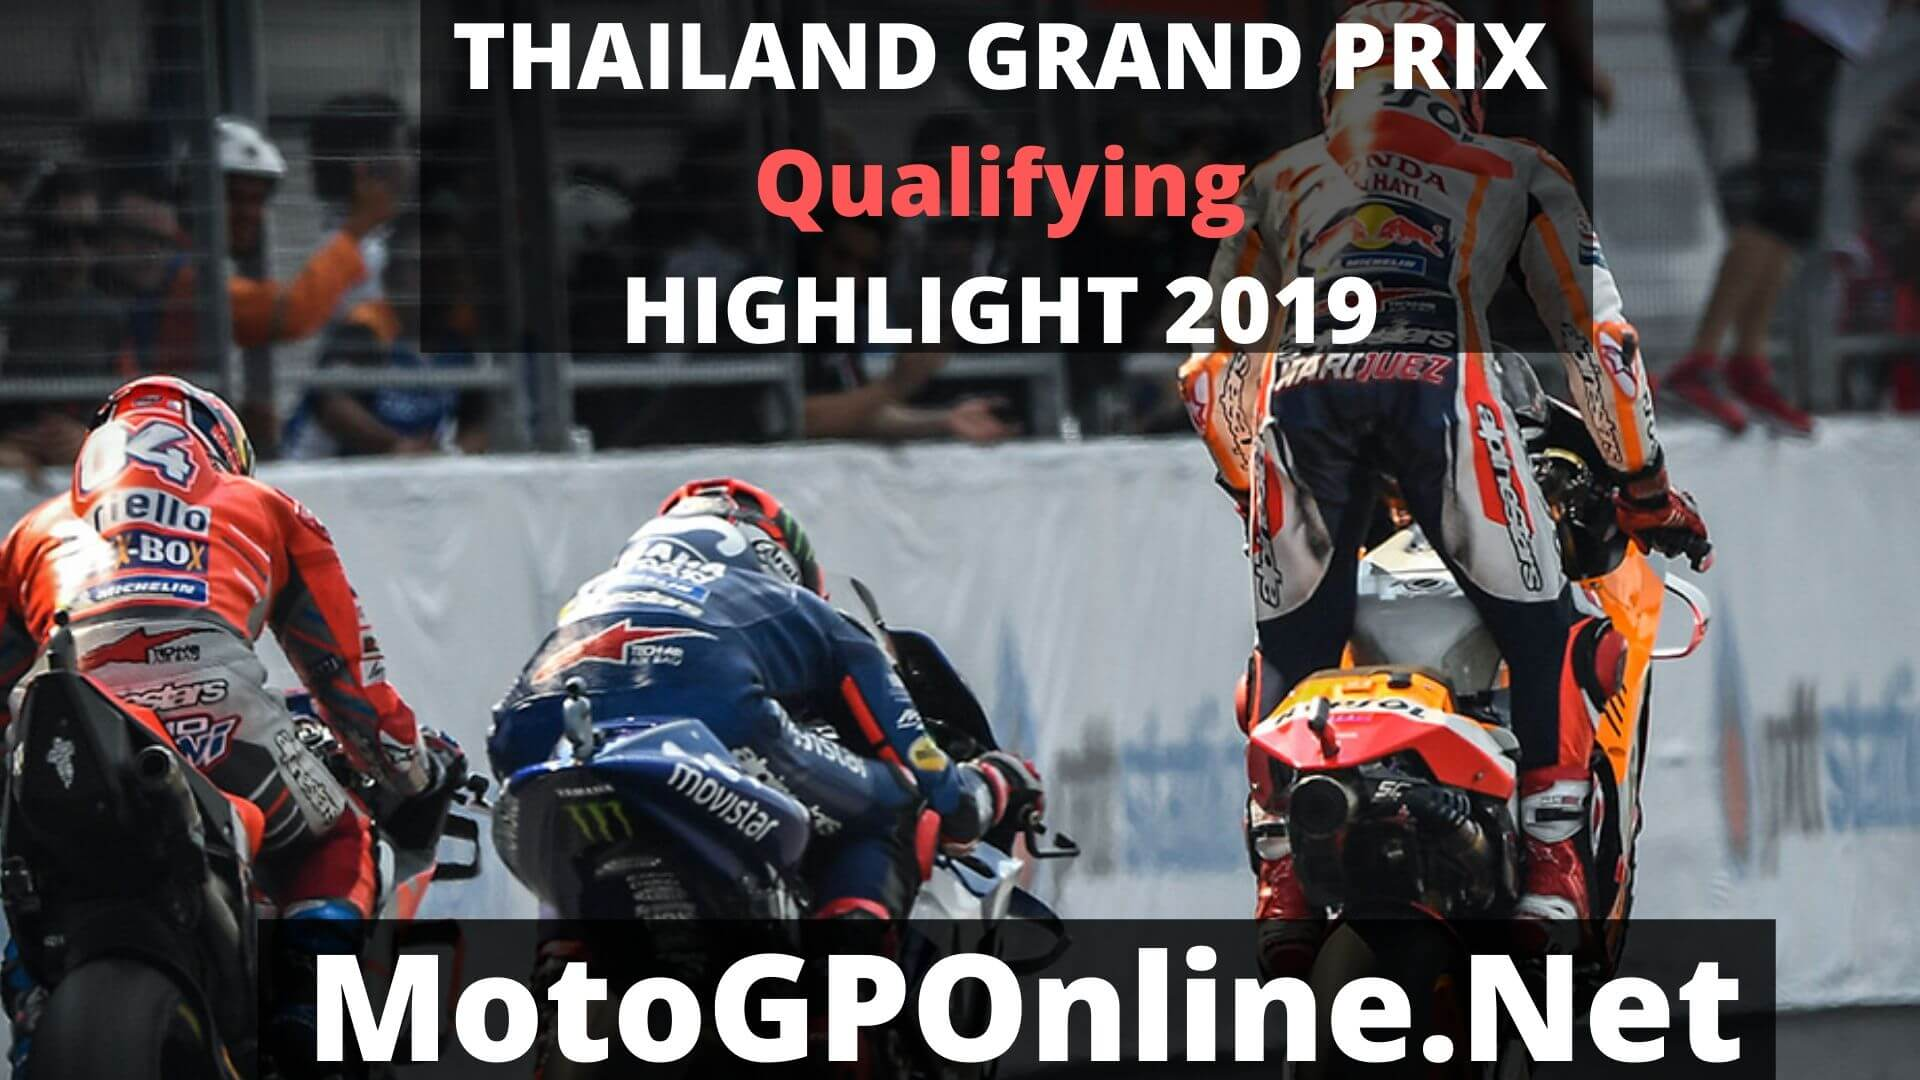 MotoGP Thailand Grand Prix Qualifying GP Race Highlights 2019